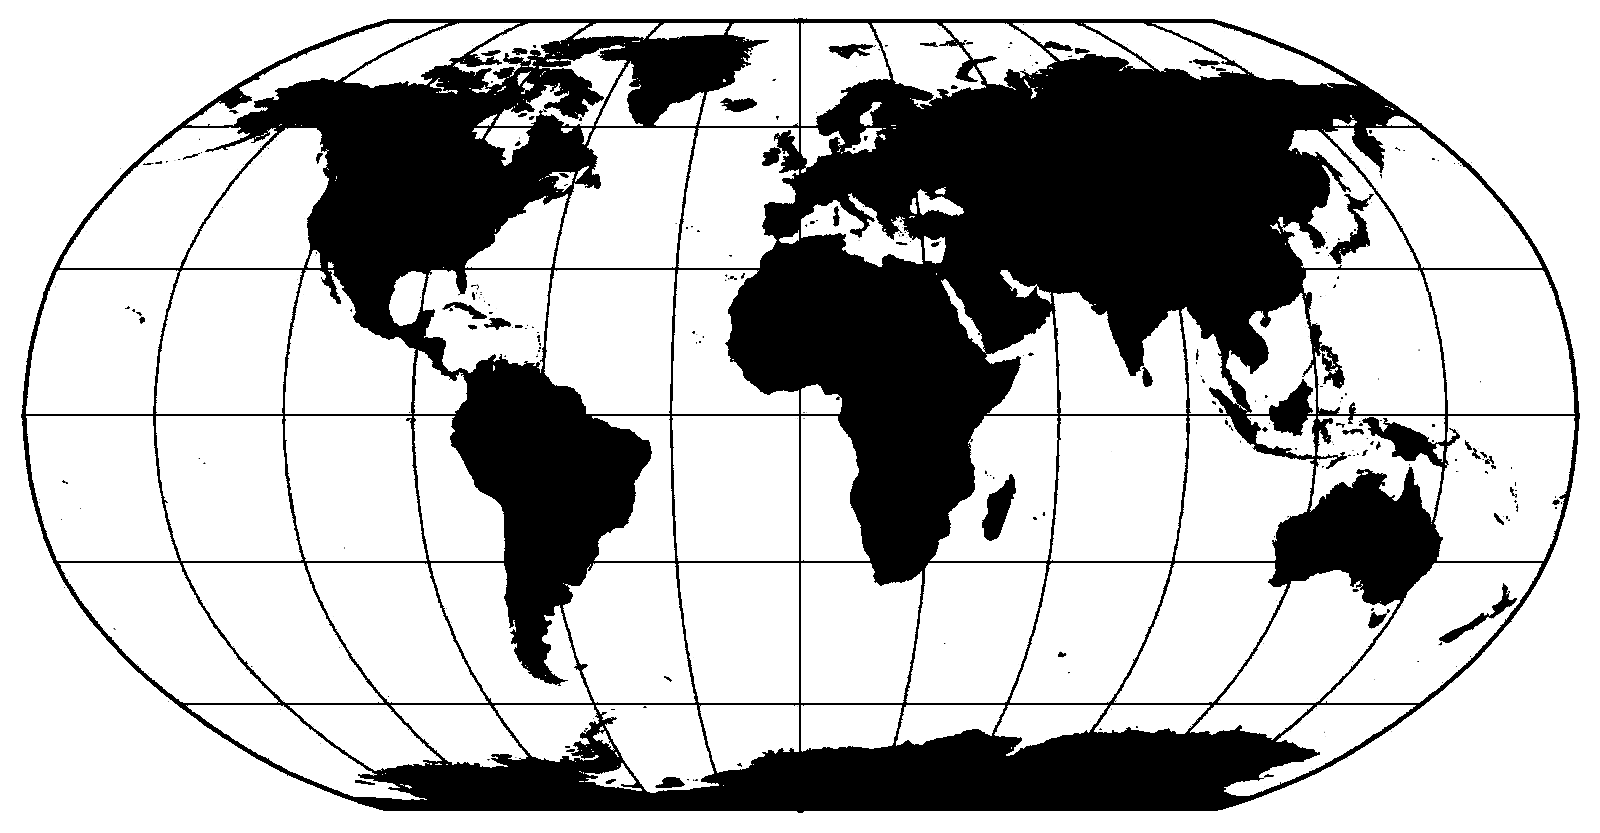 FileWorld map blackpng Wikipedia – Map World Black